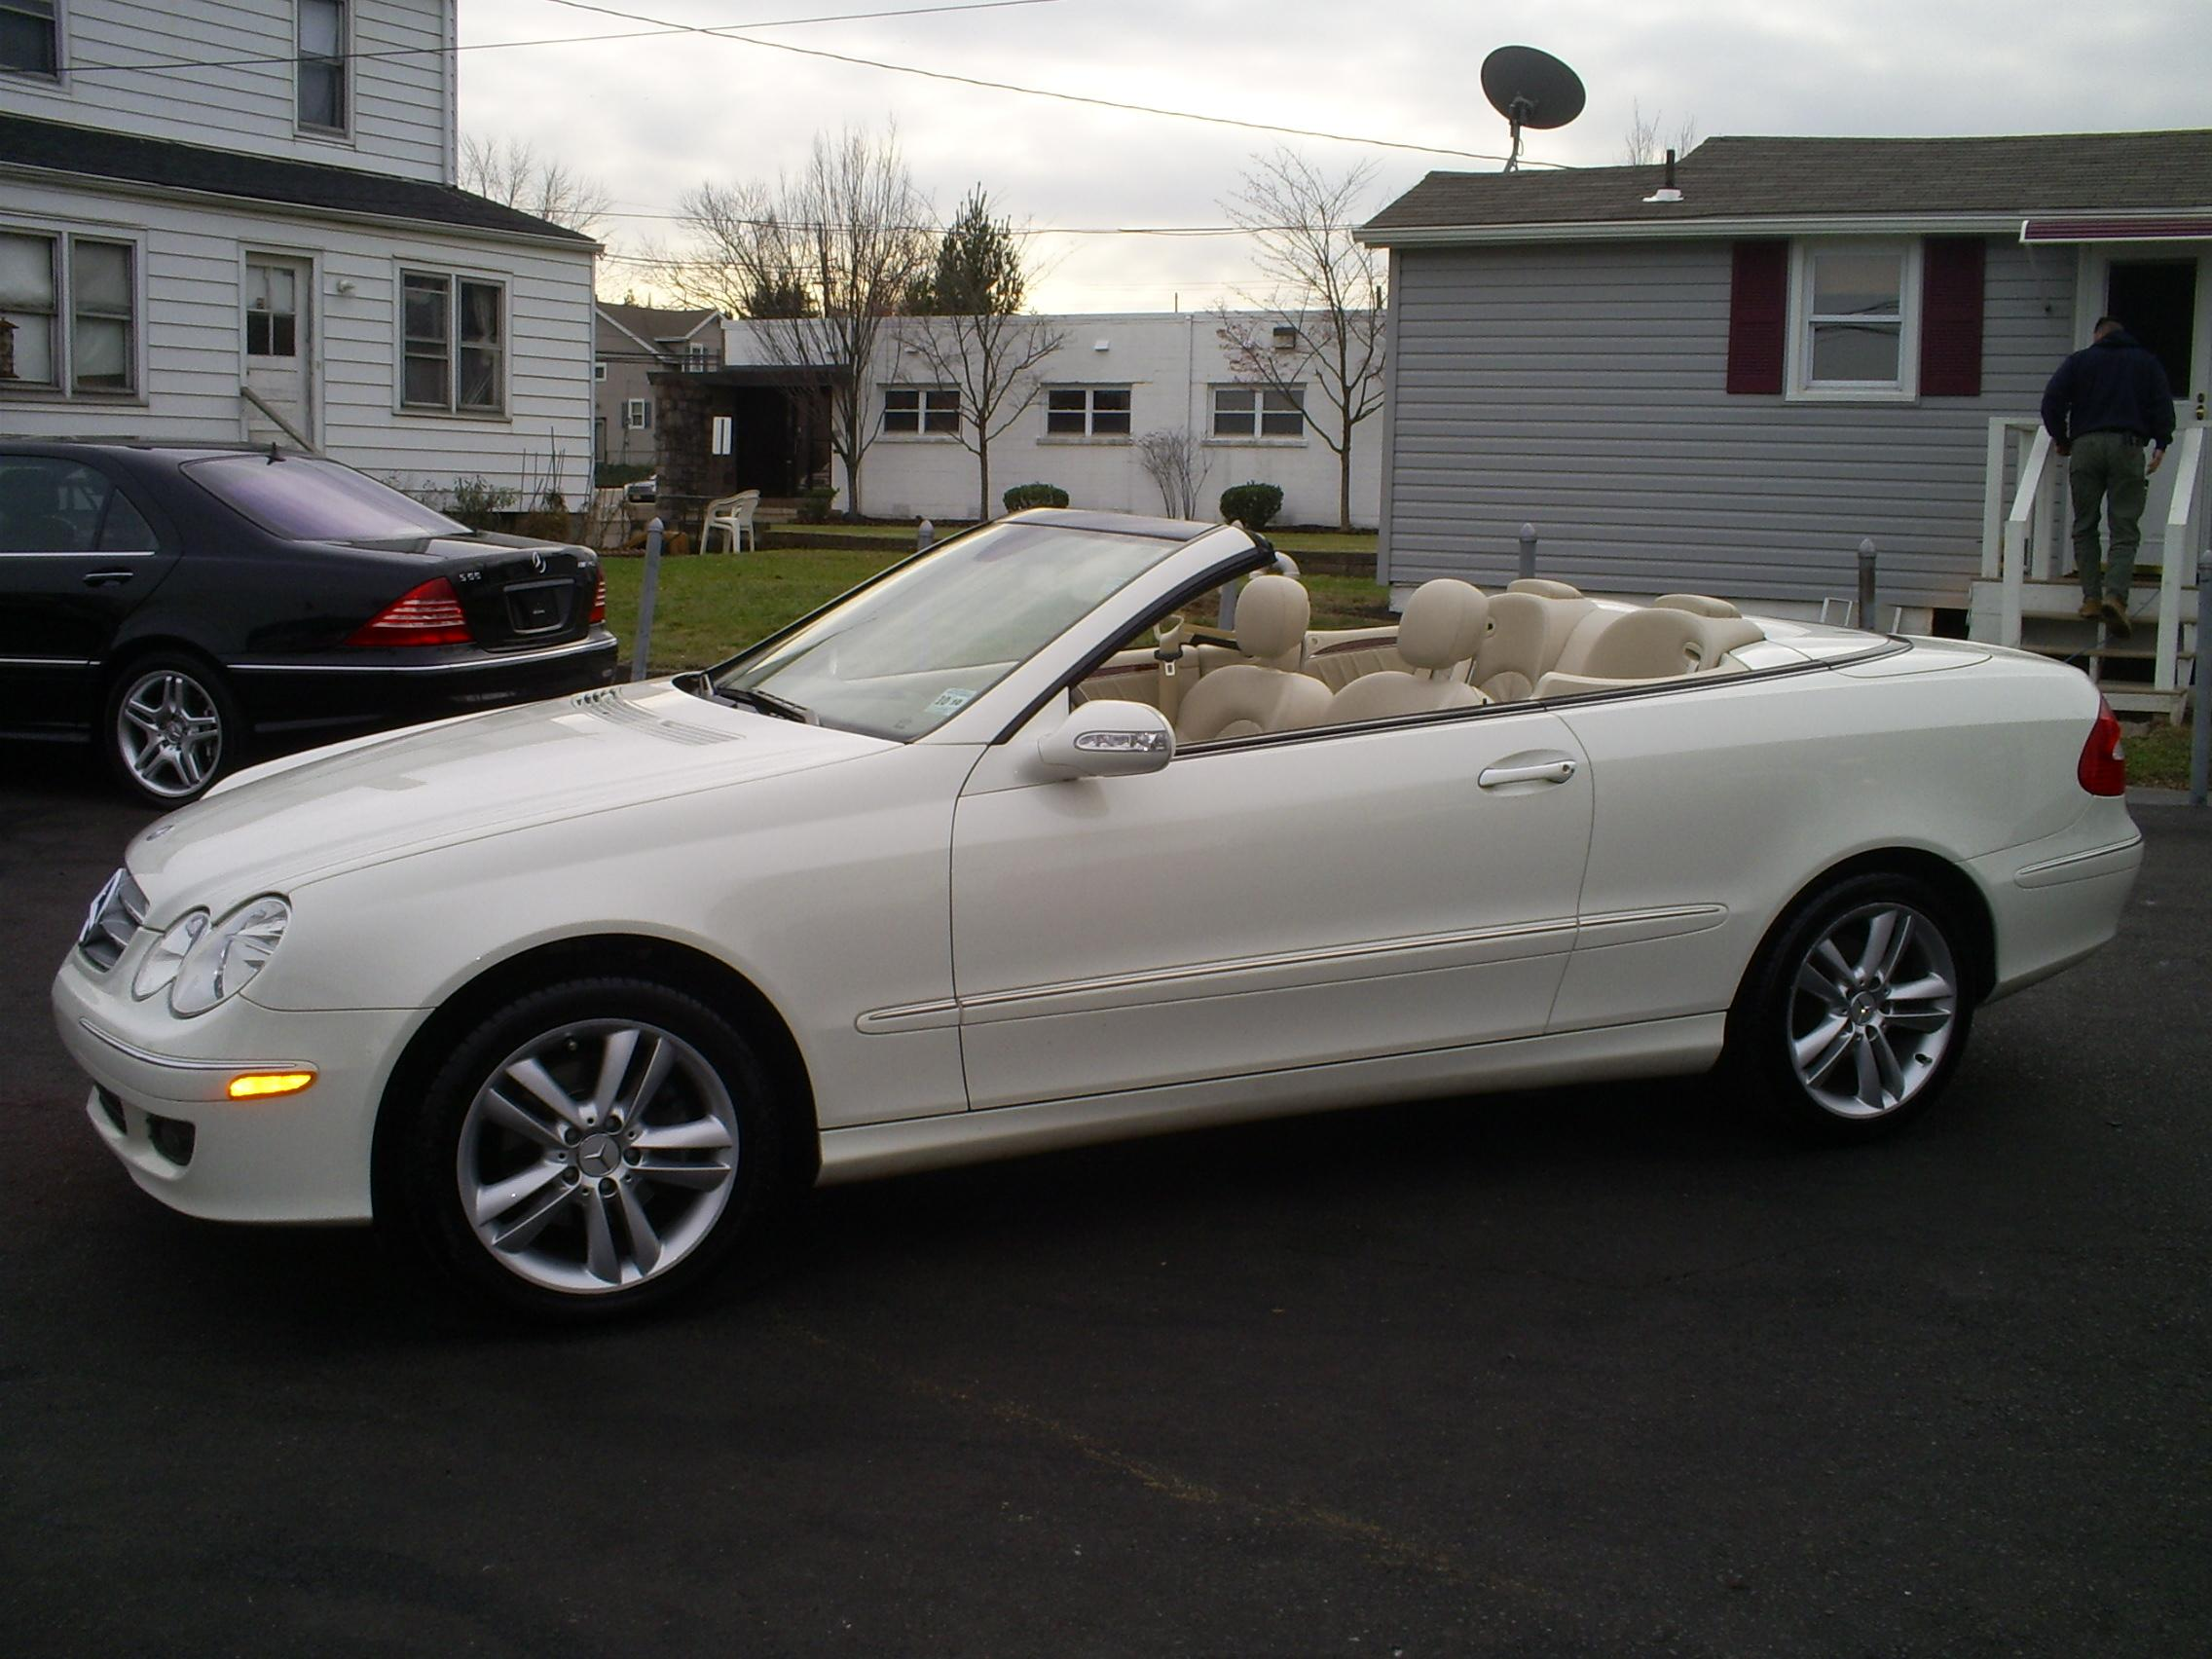 e mercedesbenz cabriolet vancouver eclass convertible mercedes autoform vehicles used benz class